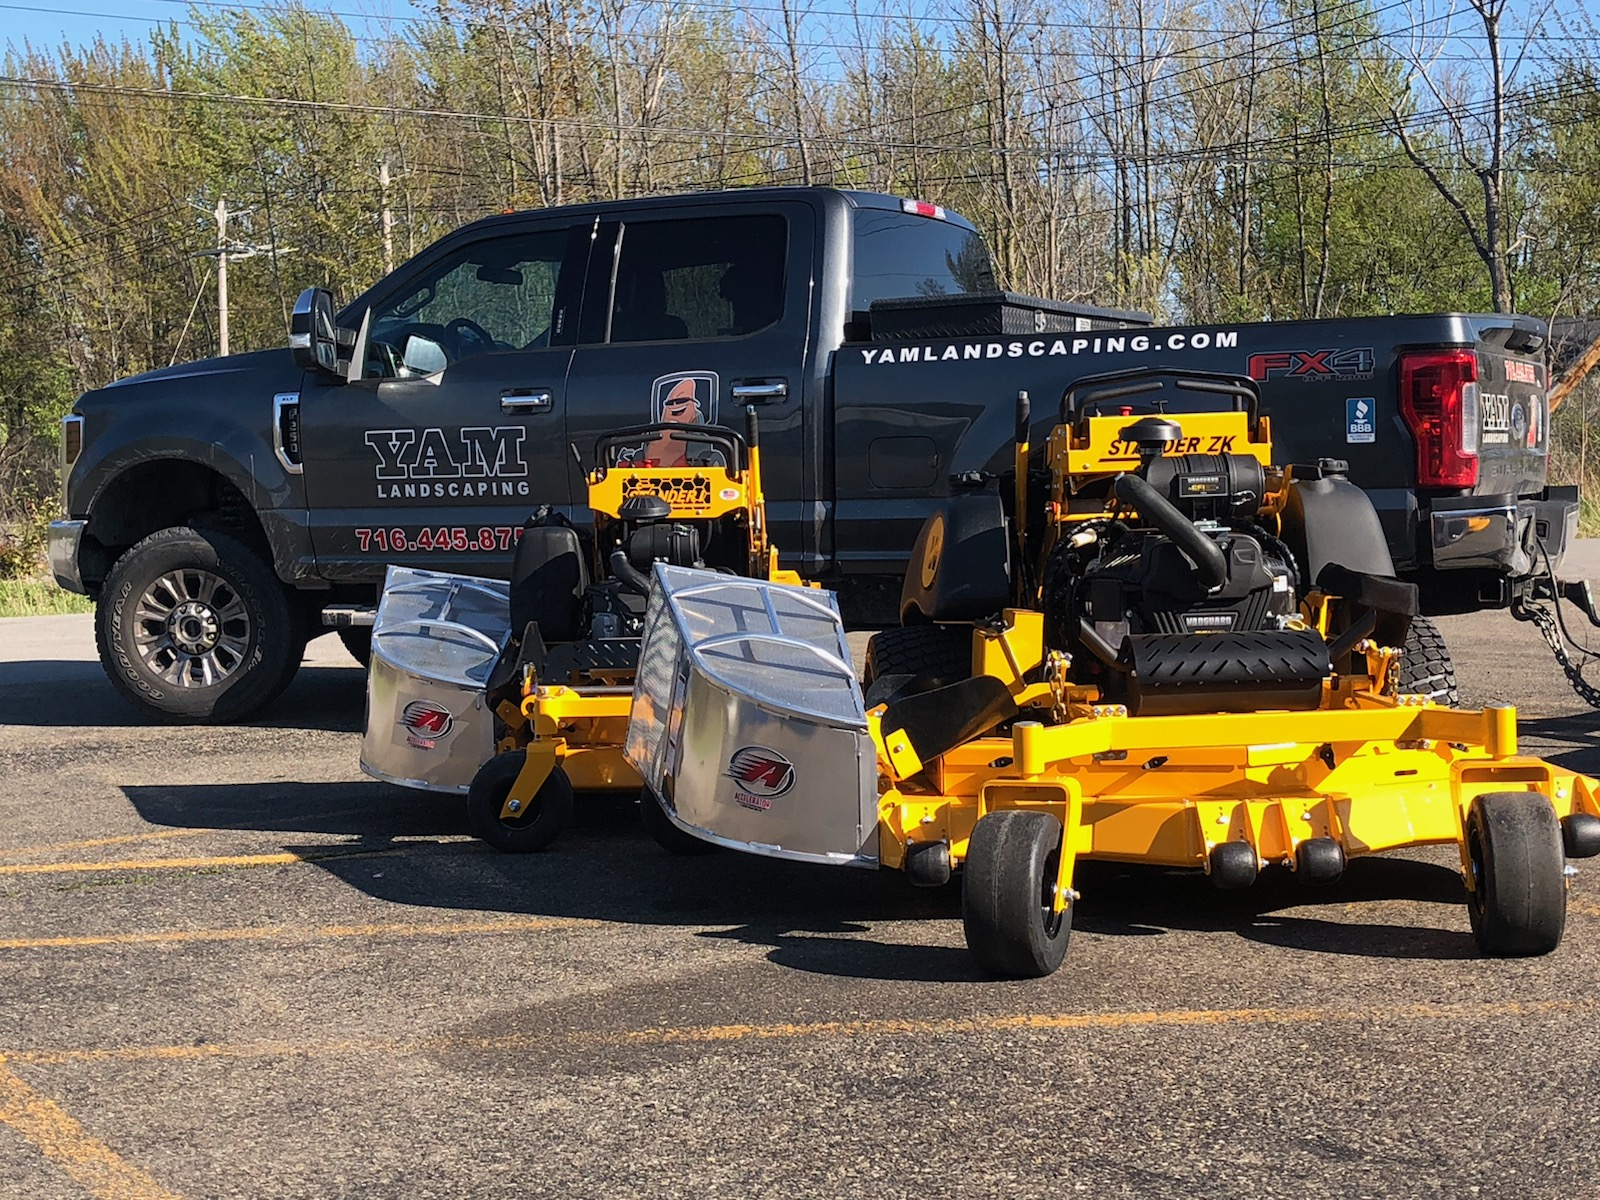 Truck and mowers